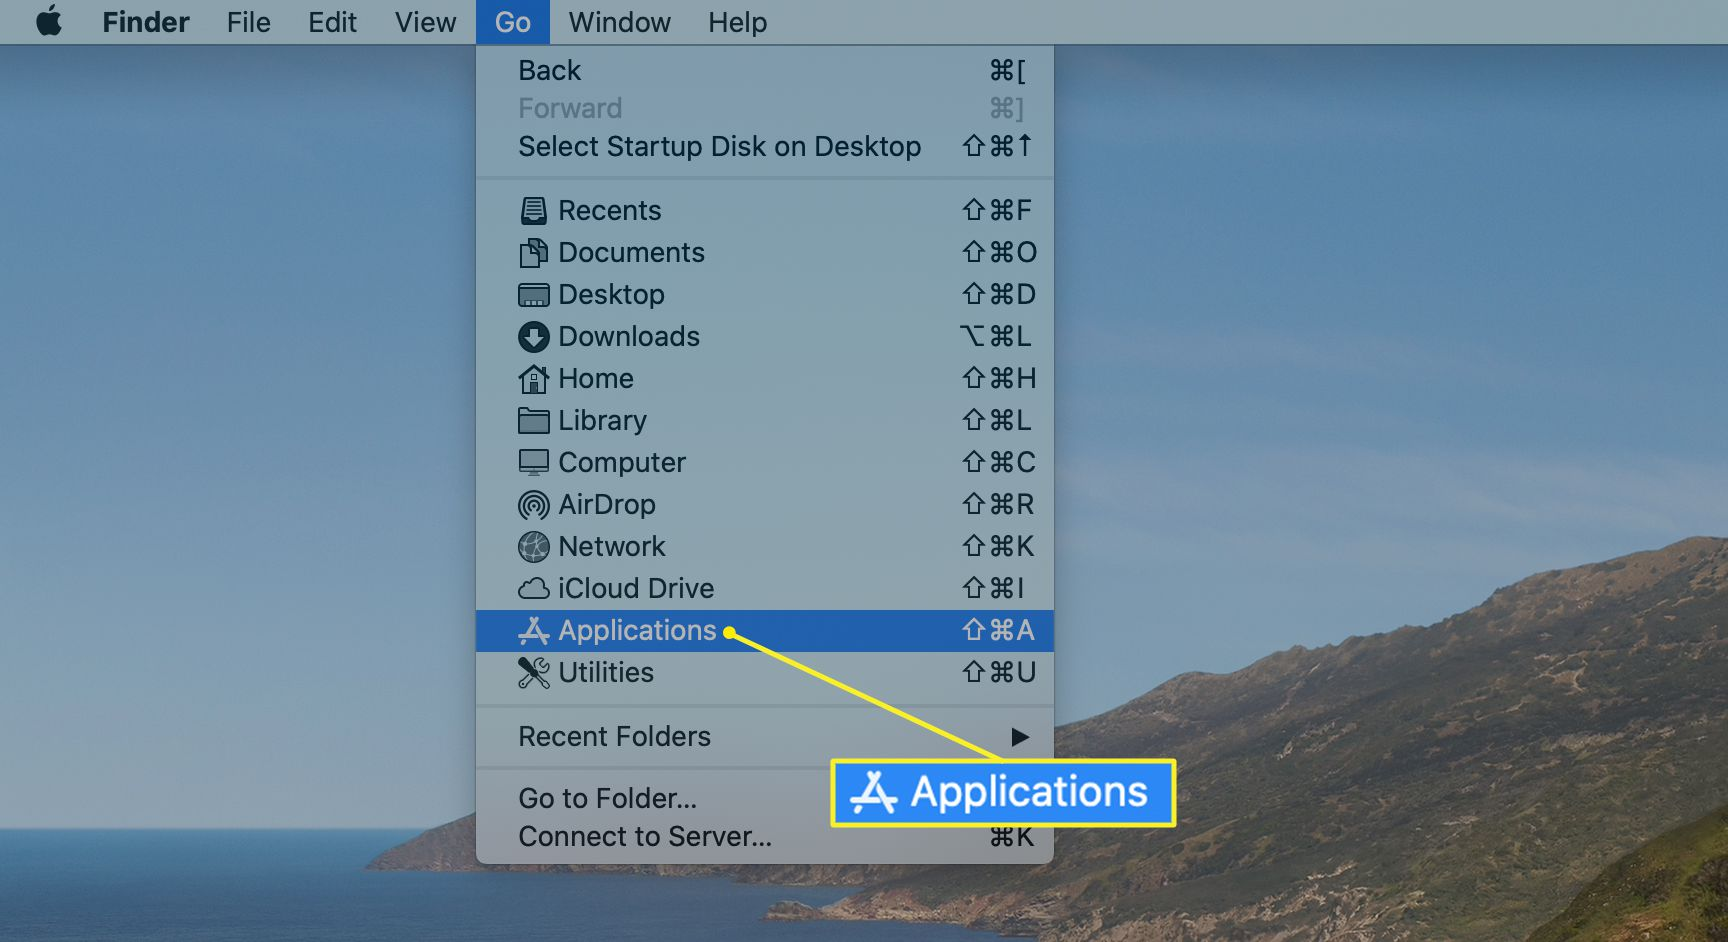 Finder Go menu with Applications highlighted